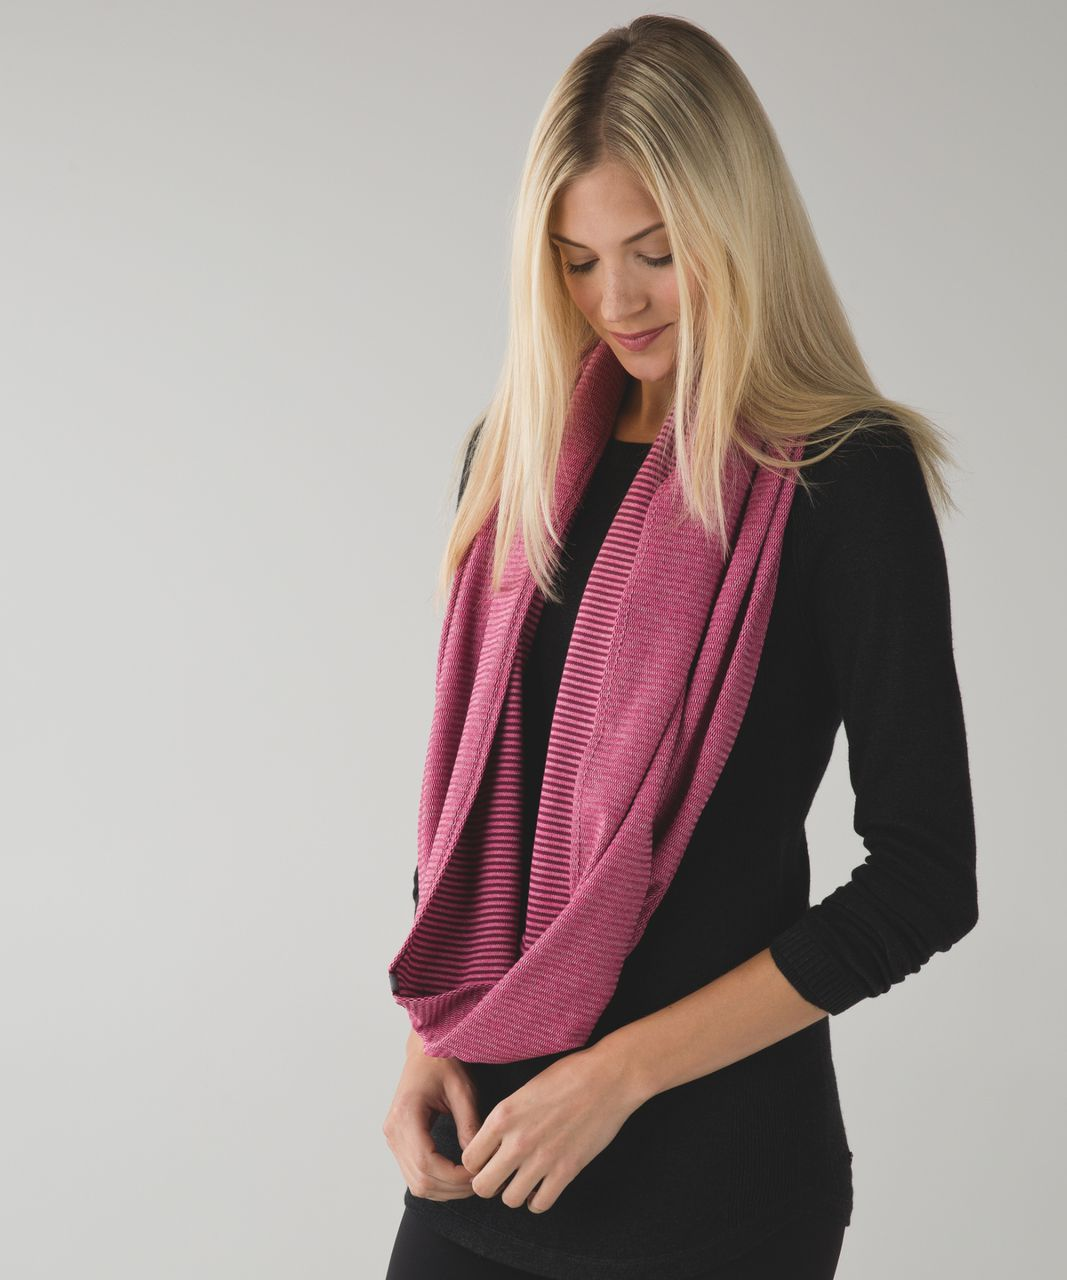 Lululemon Vinyasa Scarf *Rulu - Mini Check Pique Wine Berry Heathered Bon Bon